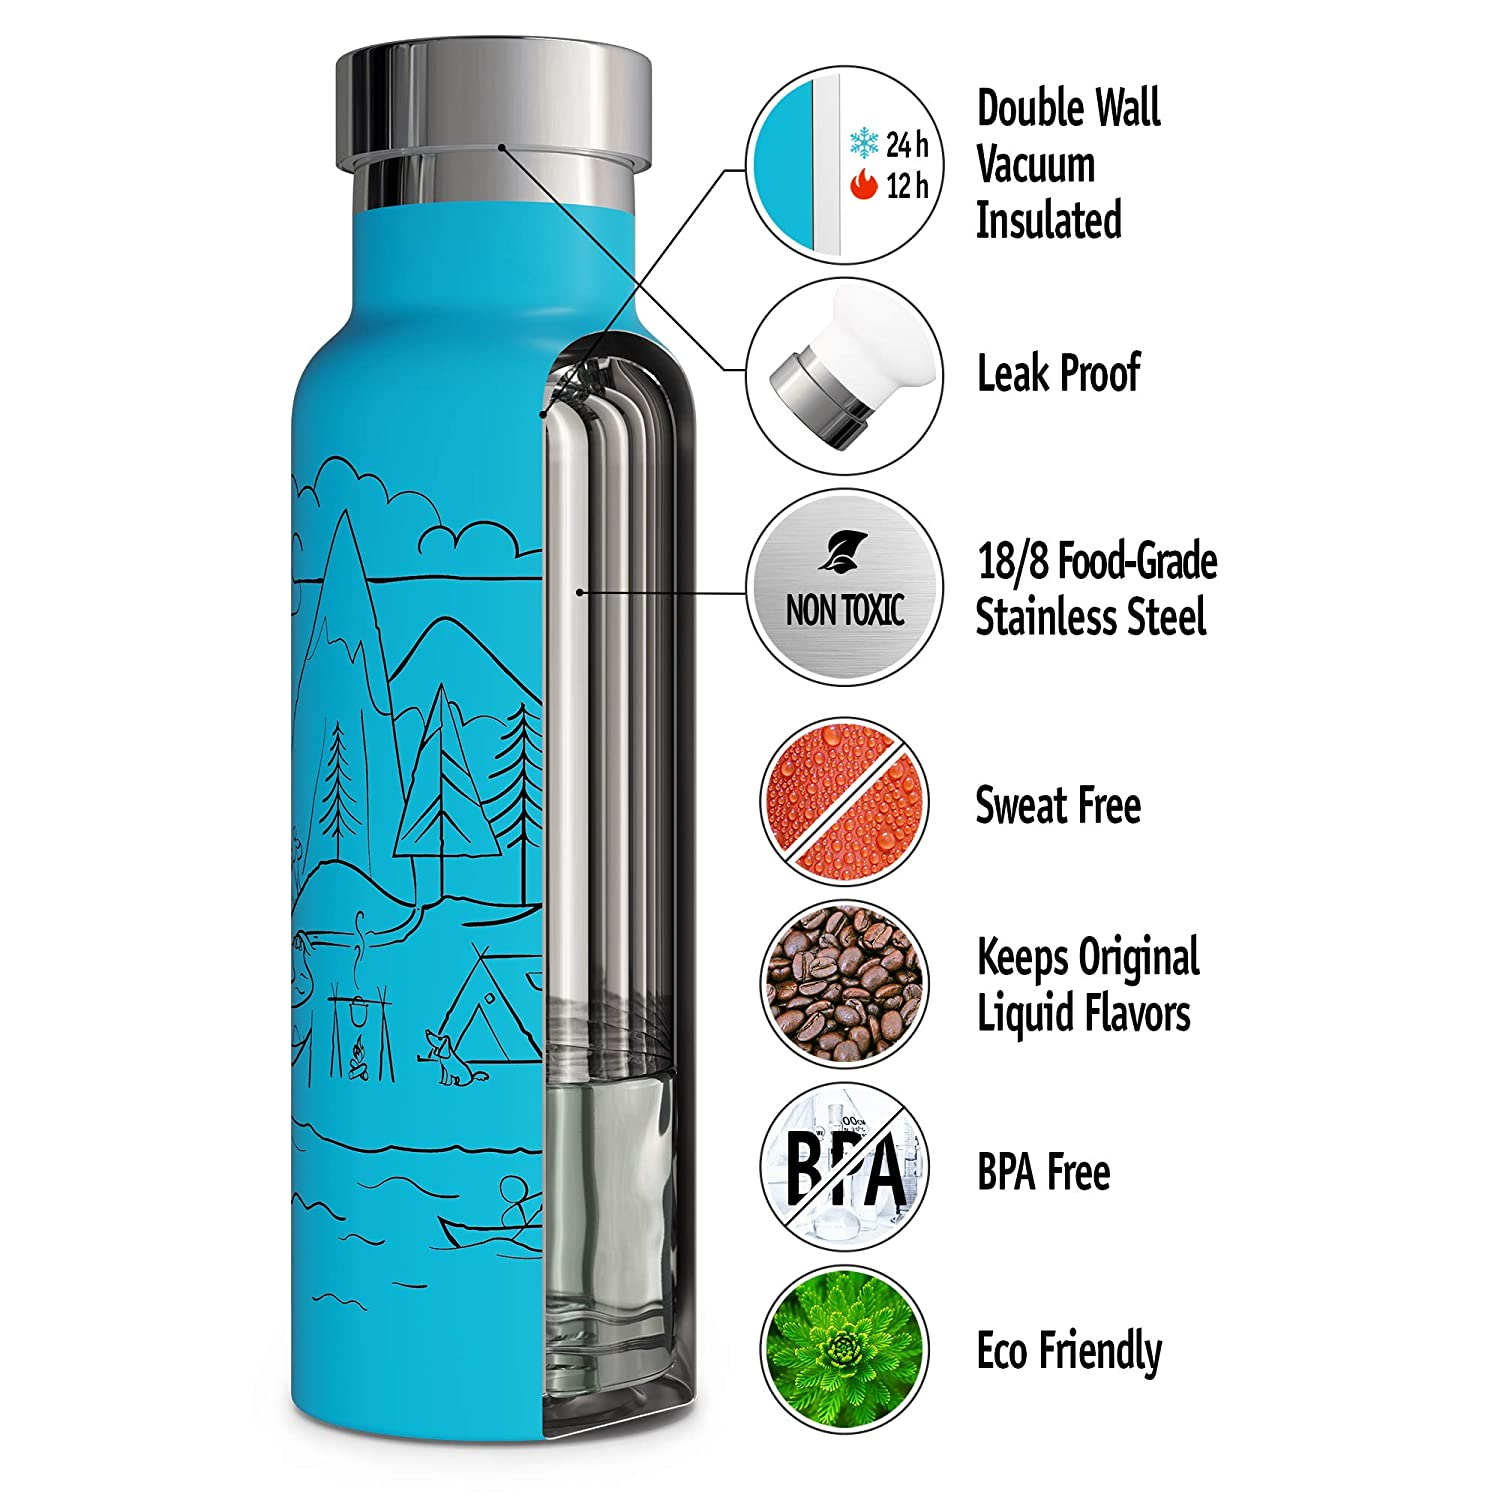 Stainless Steel Eco Friendly Non Sweat Durable Finish 17oz Double Insulated Water Bottle with BPA Free Straw Lid /& Sports Cap 25oz Metal Hydro Thermos Kids Water Bottle Involve /& Evolve 20oz